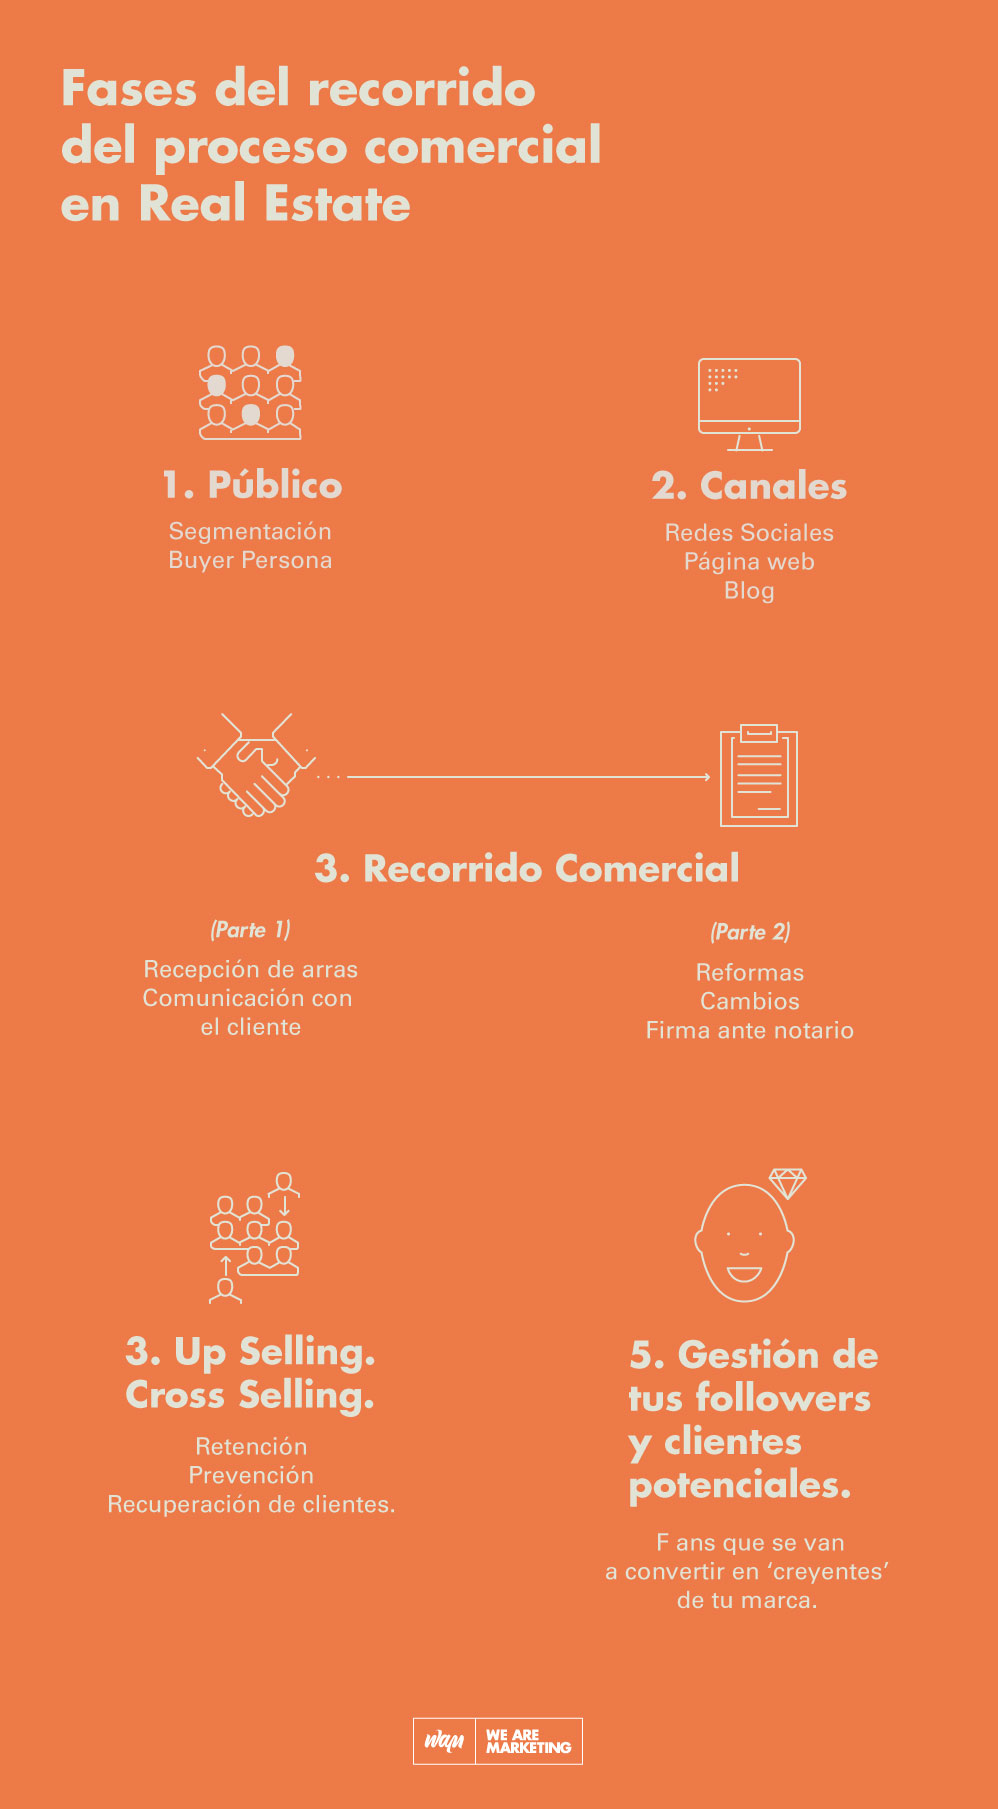 infografia_Toda-la-verdad-sobre-como-funciona-el-Marketing-Digital-en-Real-Estate.jpg